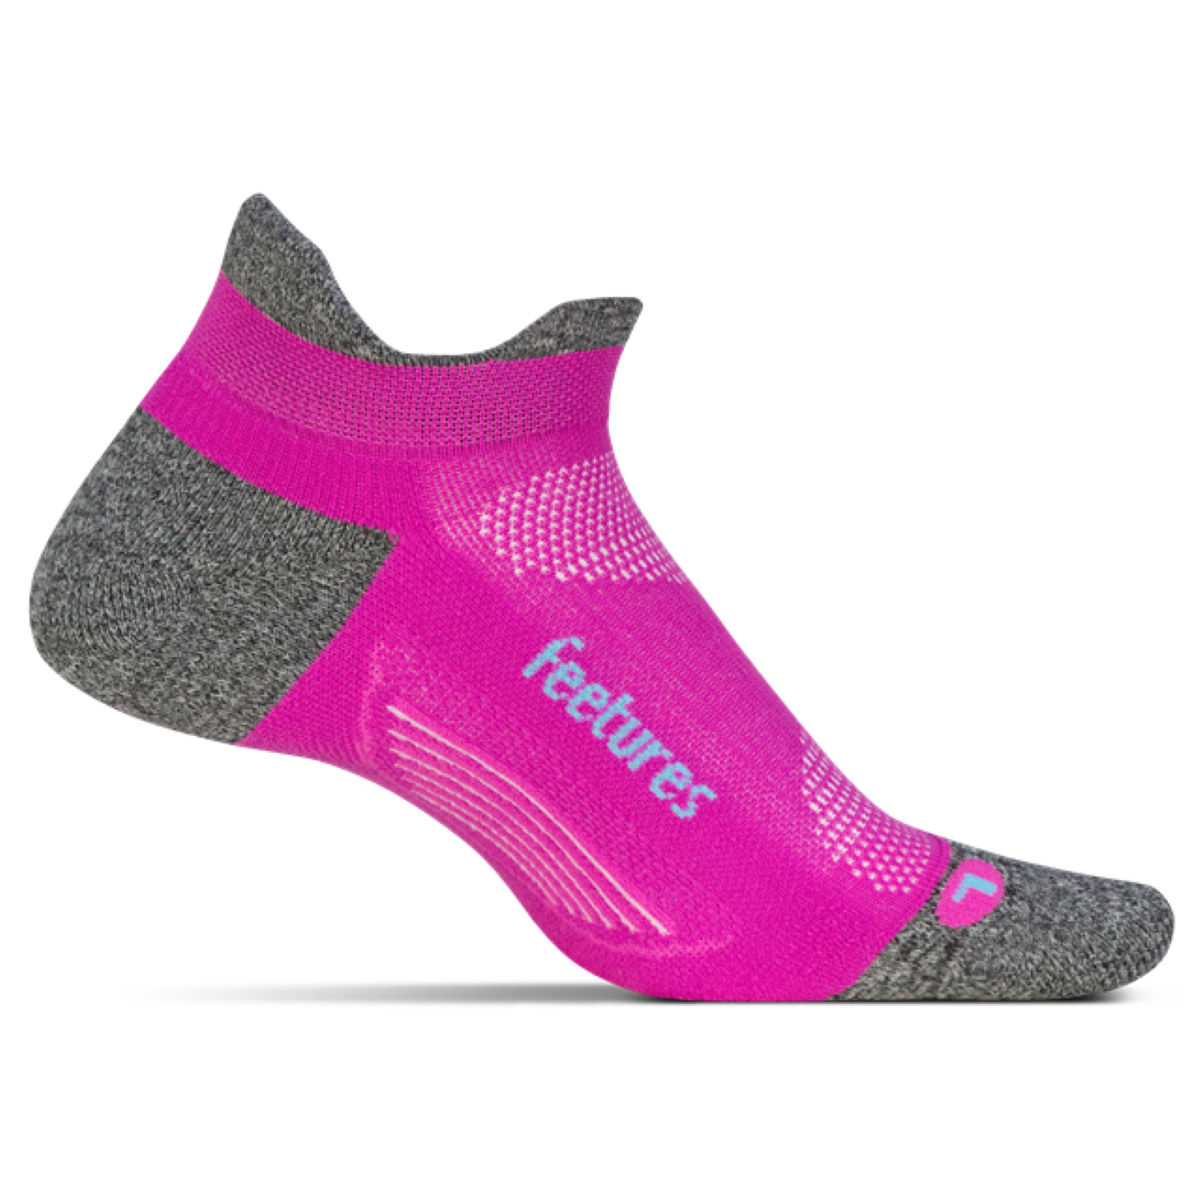 Calcetines Feetures! Elite Light Cushion No Show Tab para mujer - Calcetines para correr